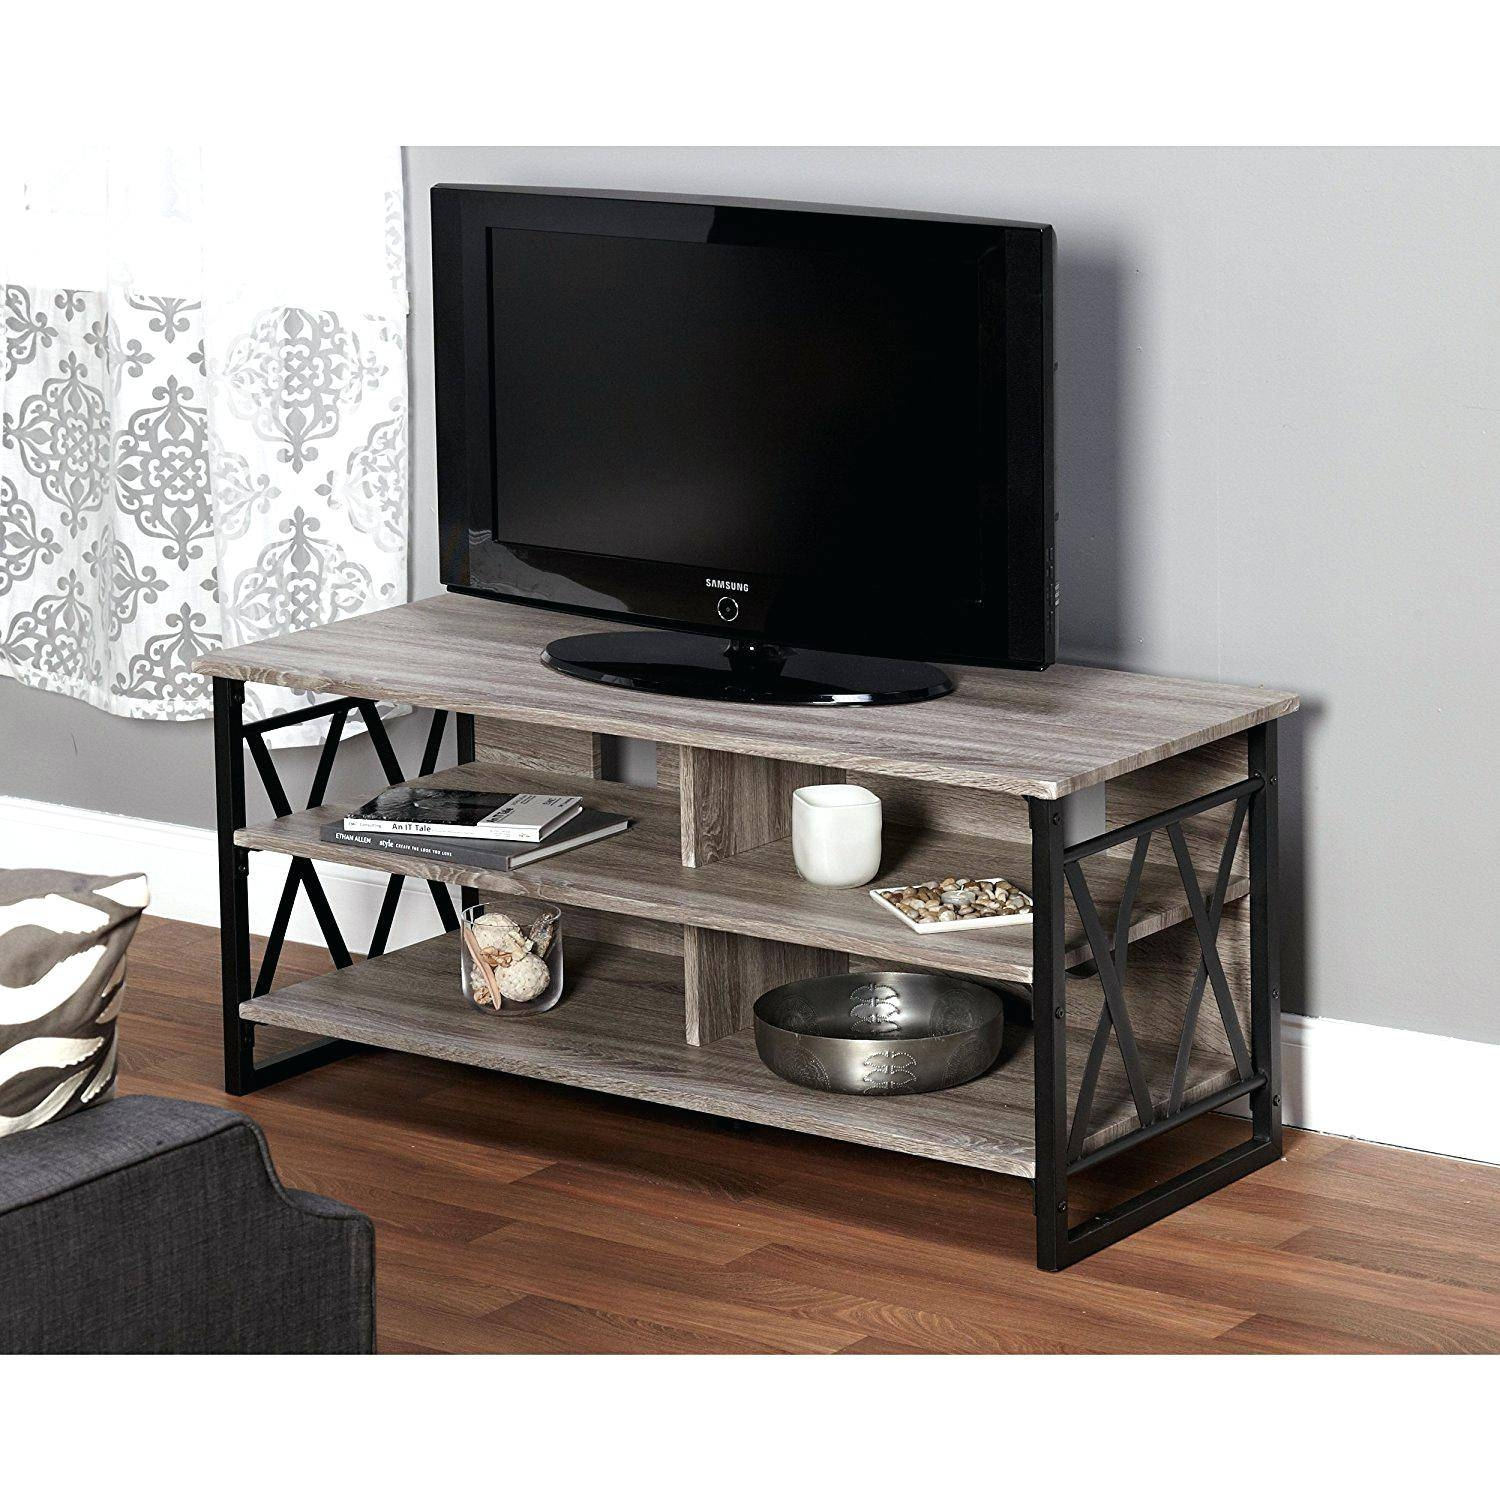 Tv Stand : Oriental Furniture Tv Stands 69 Cozy Tv Stands In Country Tv Stands (View 13 of 15)